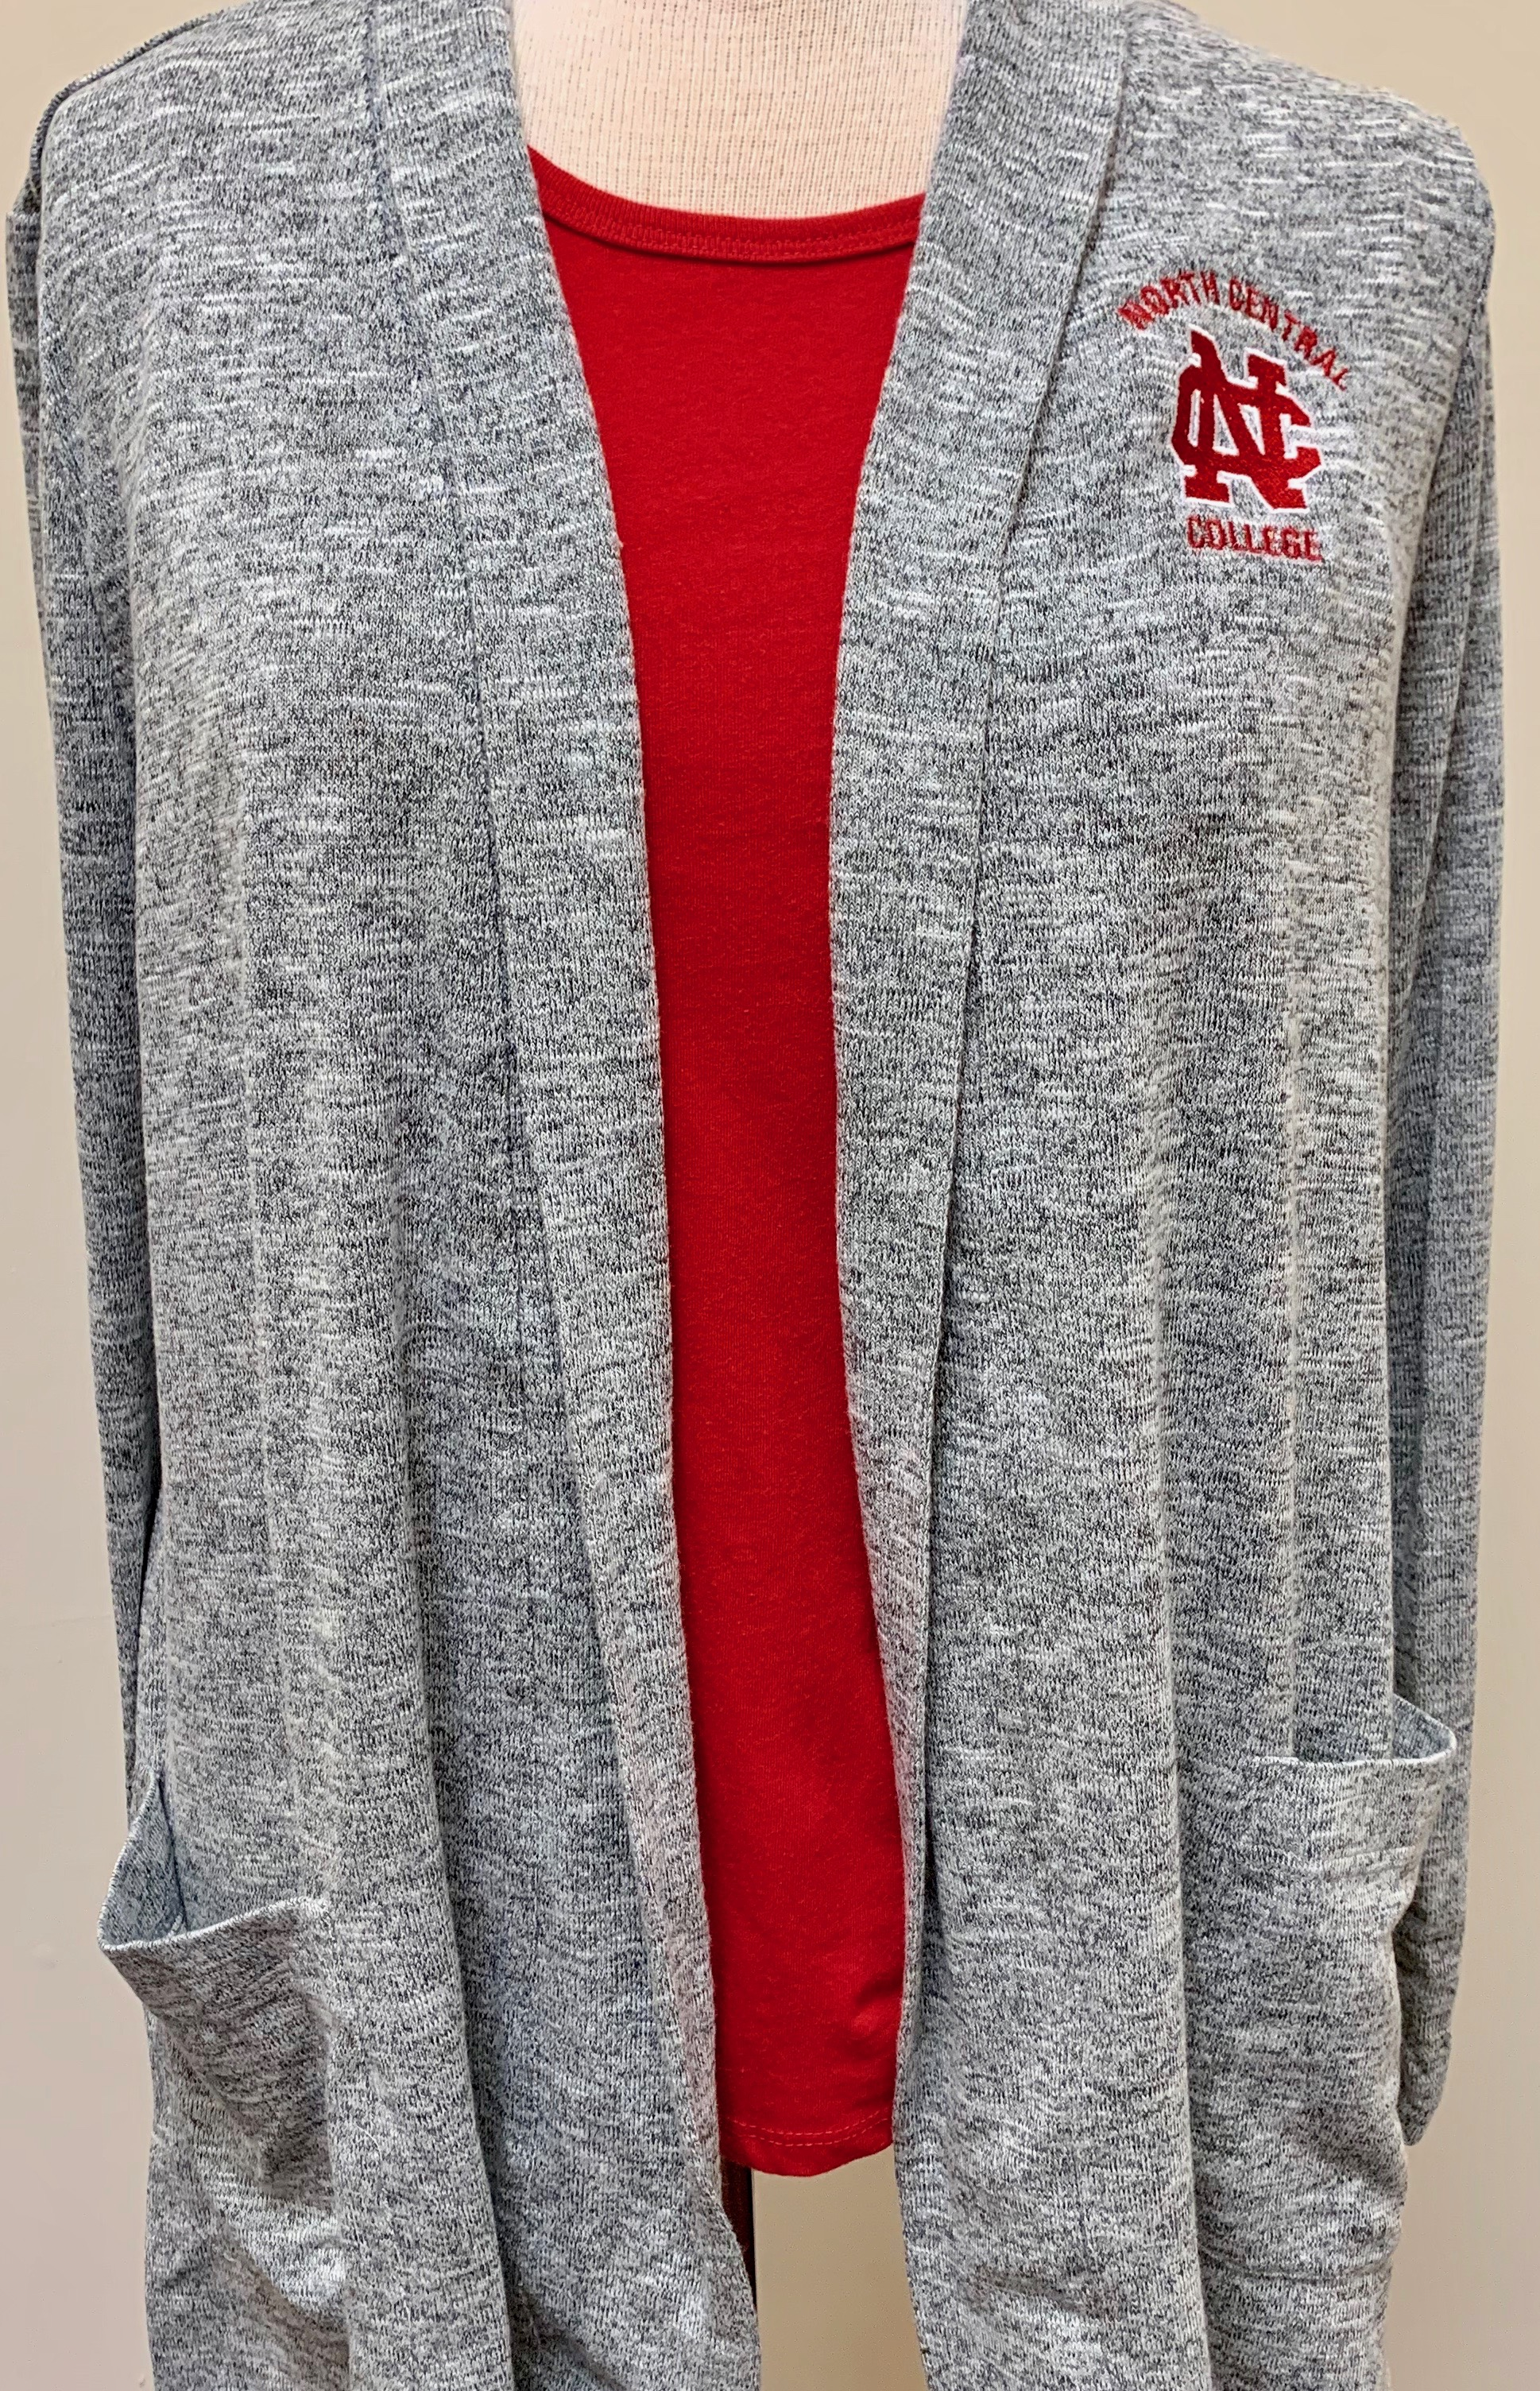 Image for the Women's Easy Fit Cardigan w/ pockets product